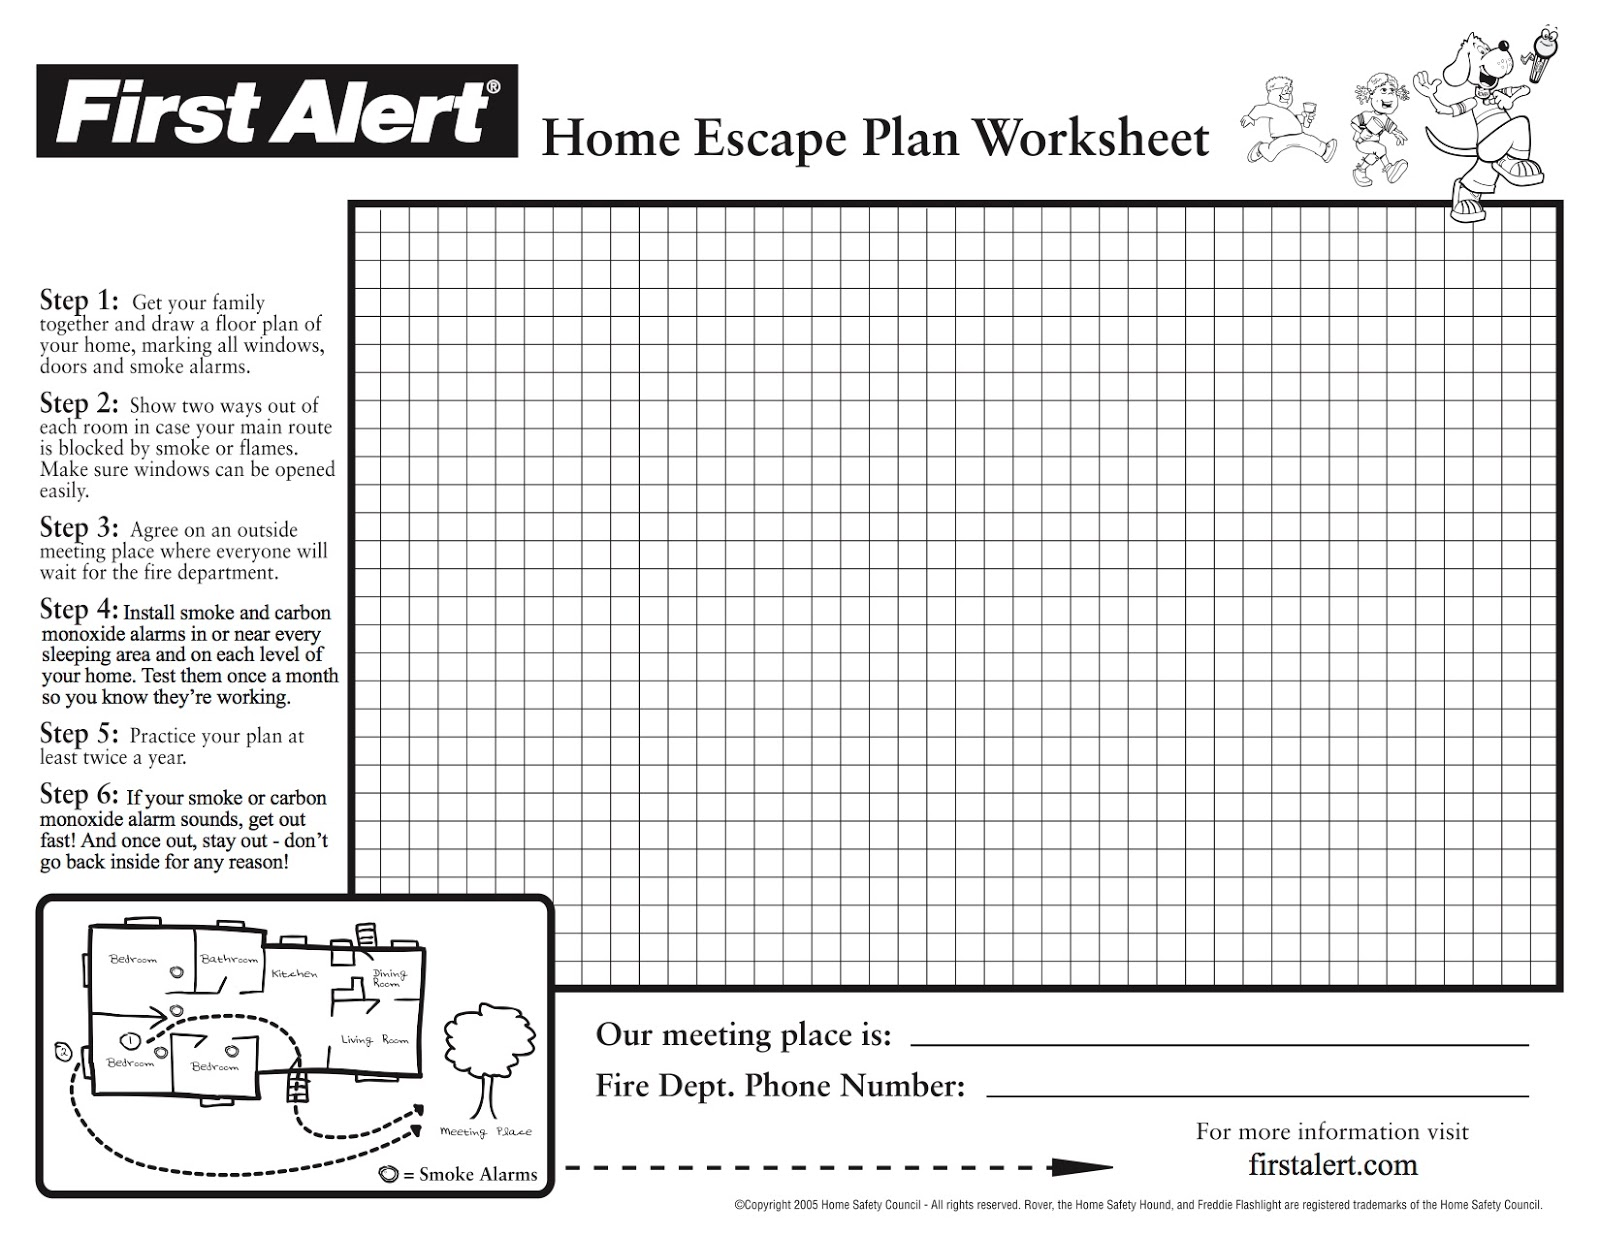 Prince george 39 s county fire ems department safety first for Fire escape plan worksheet